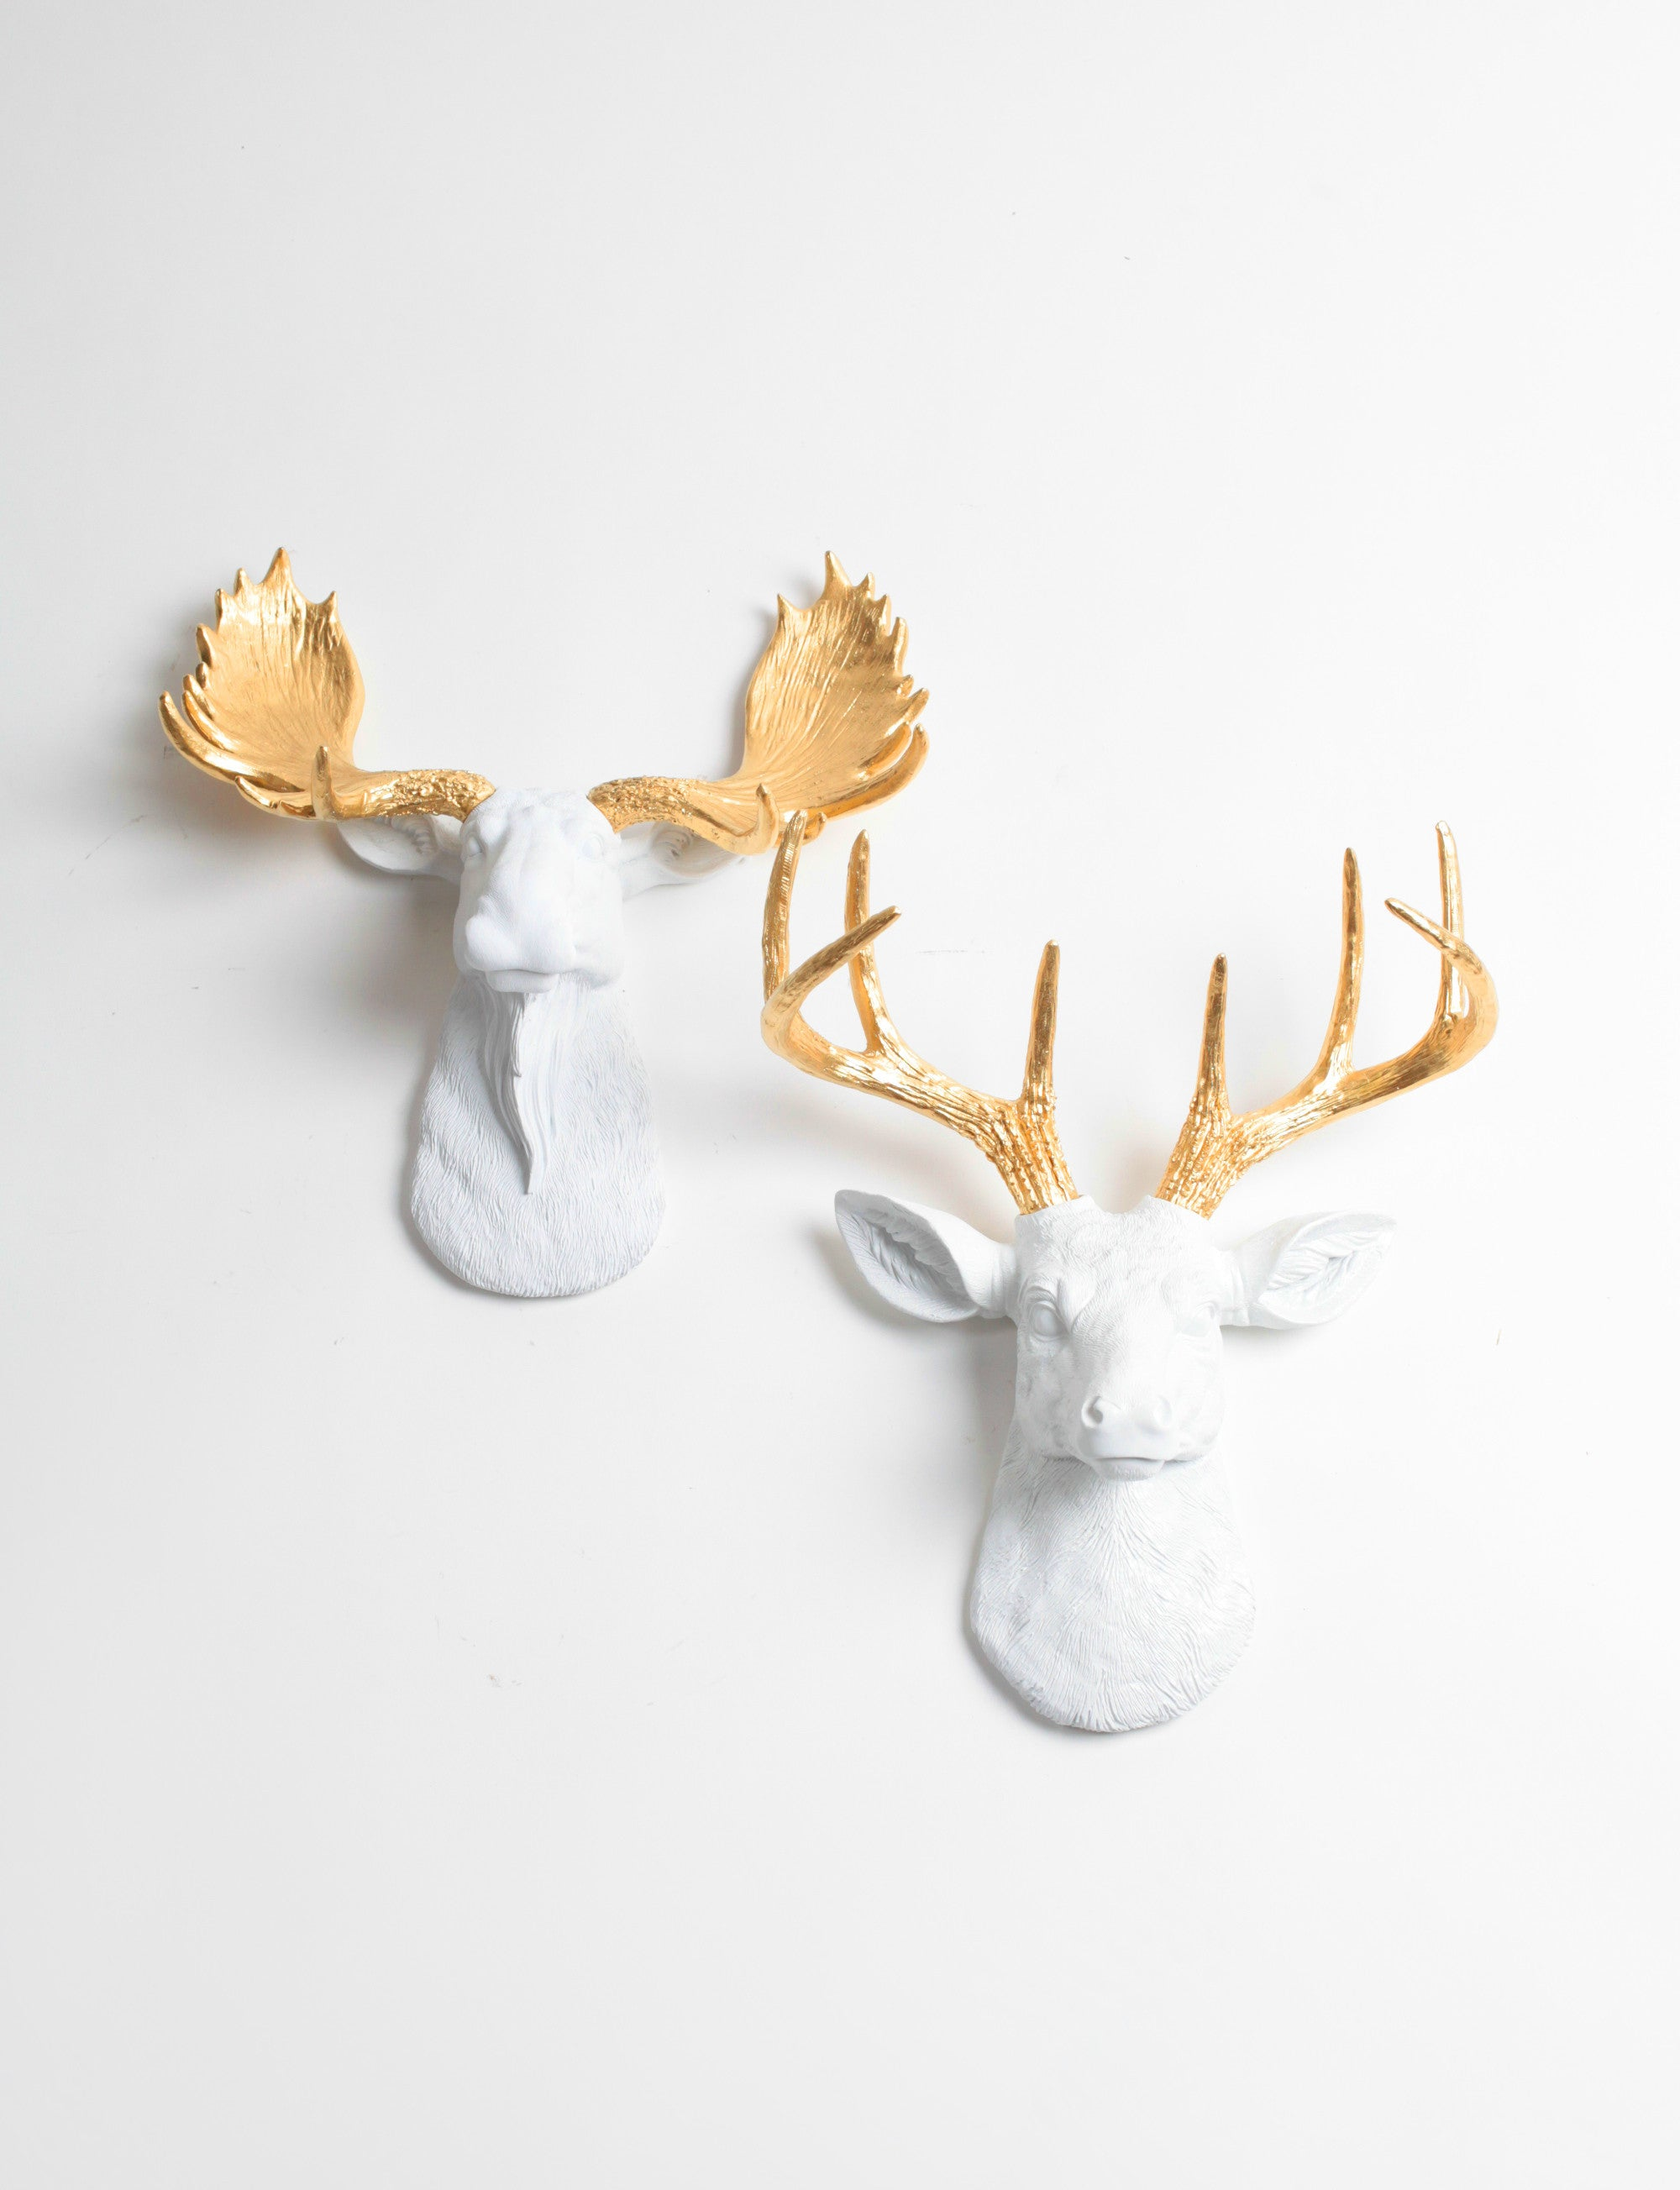 Mini Moose U0026 Deer Wall Decor | White U0026 Gold Moose And Stag | Mini Wall